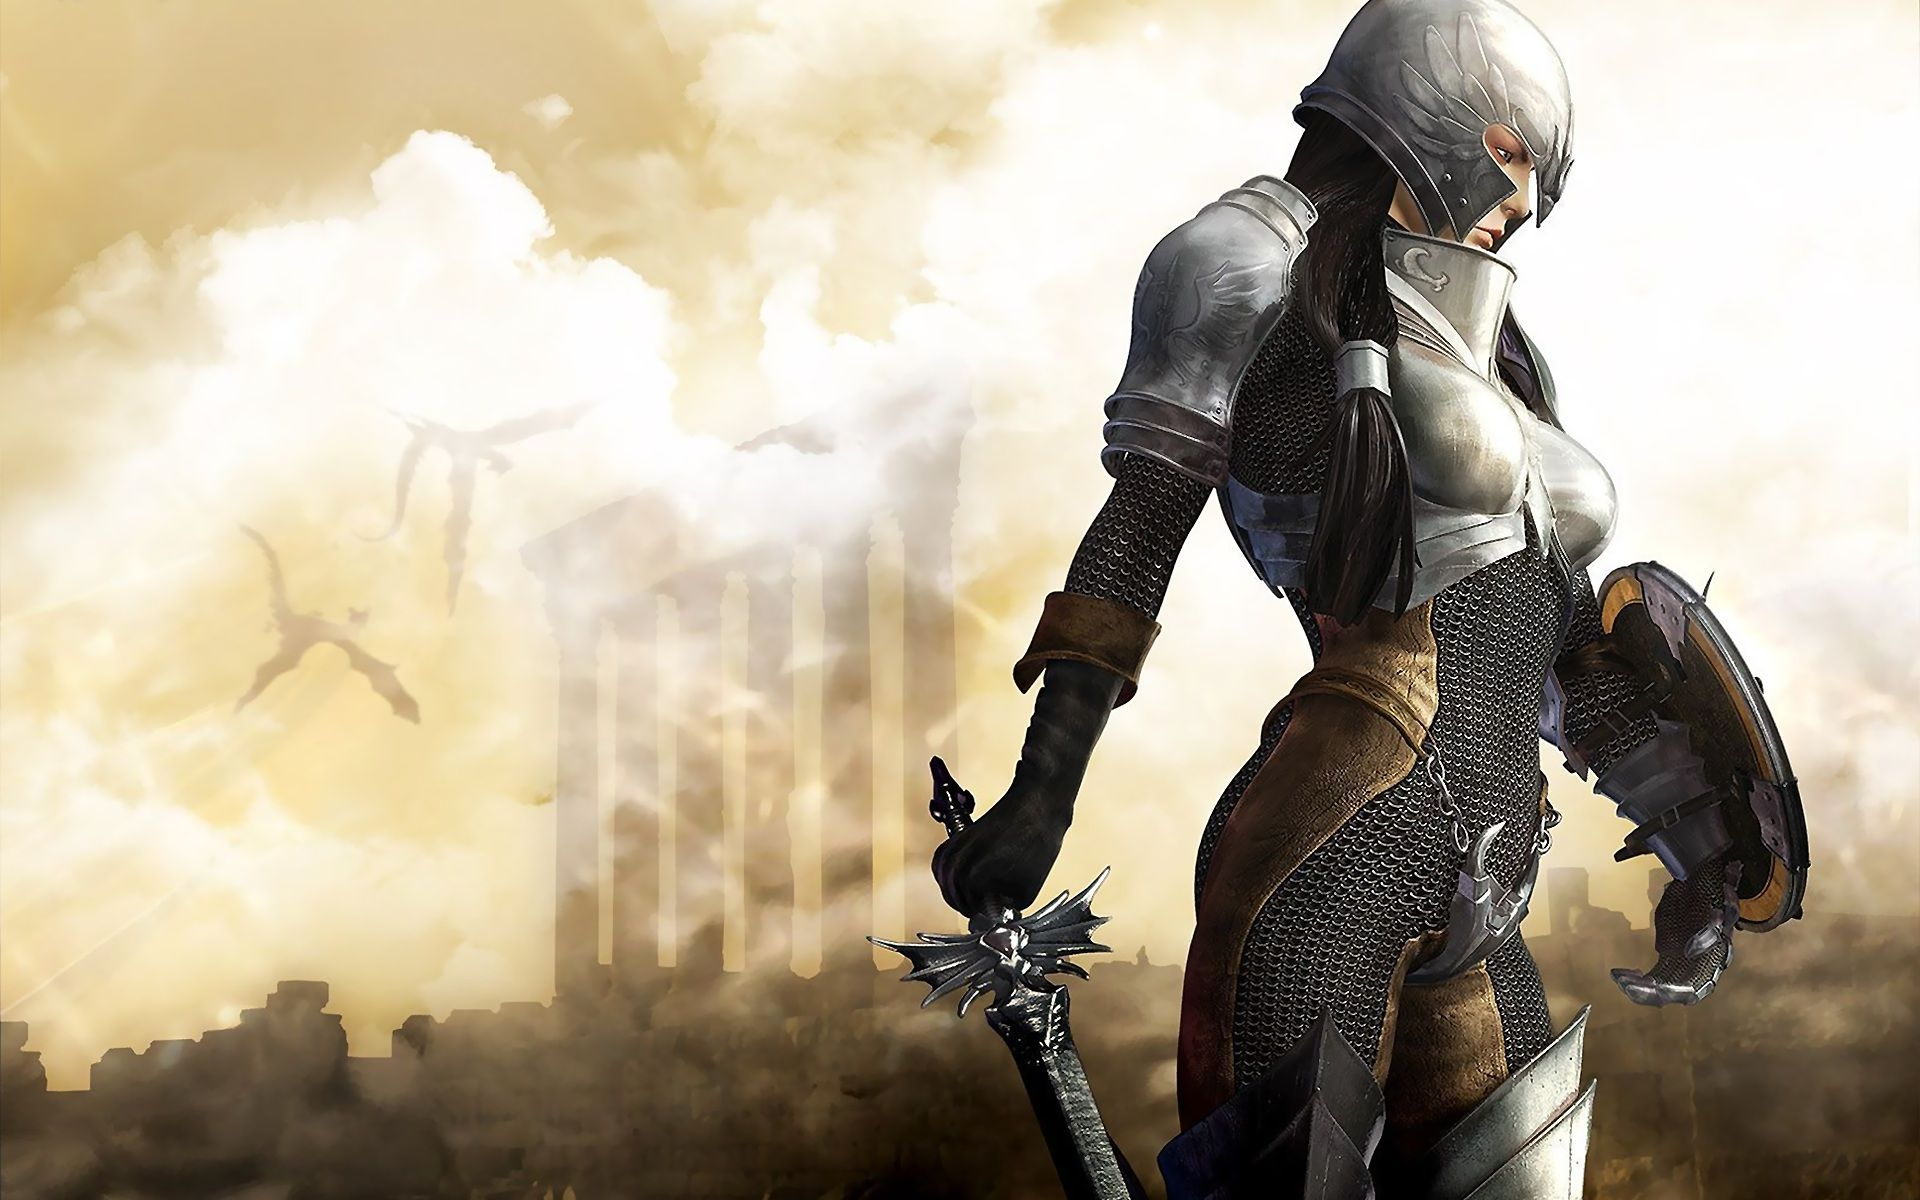 1920x1200 Download desktop wallpaper Girl knight in chain mail and armor